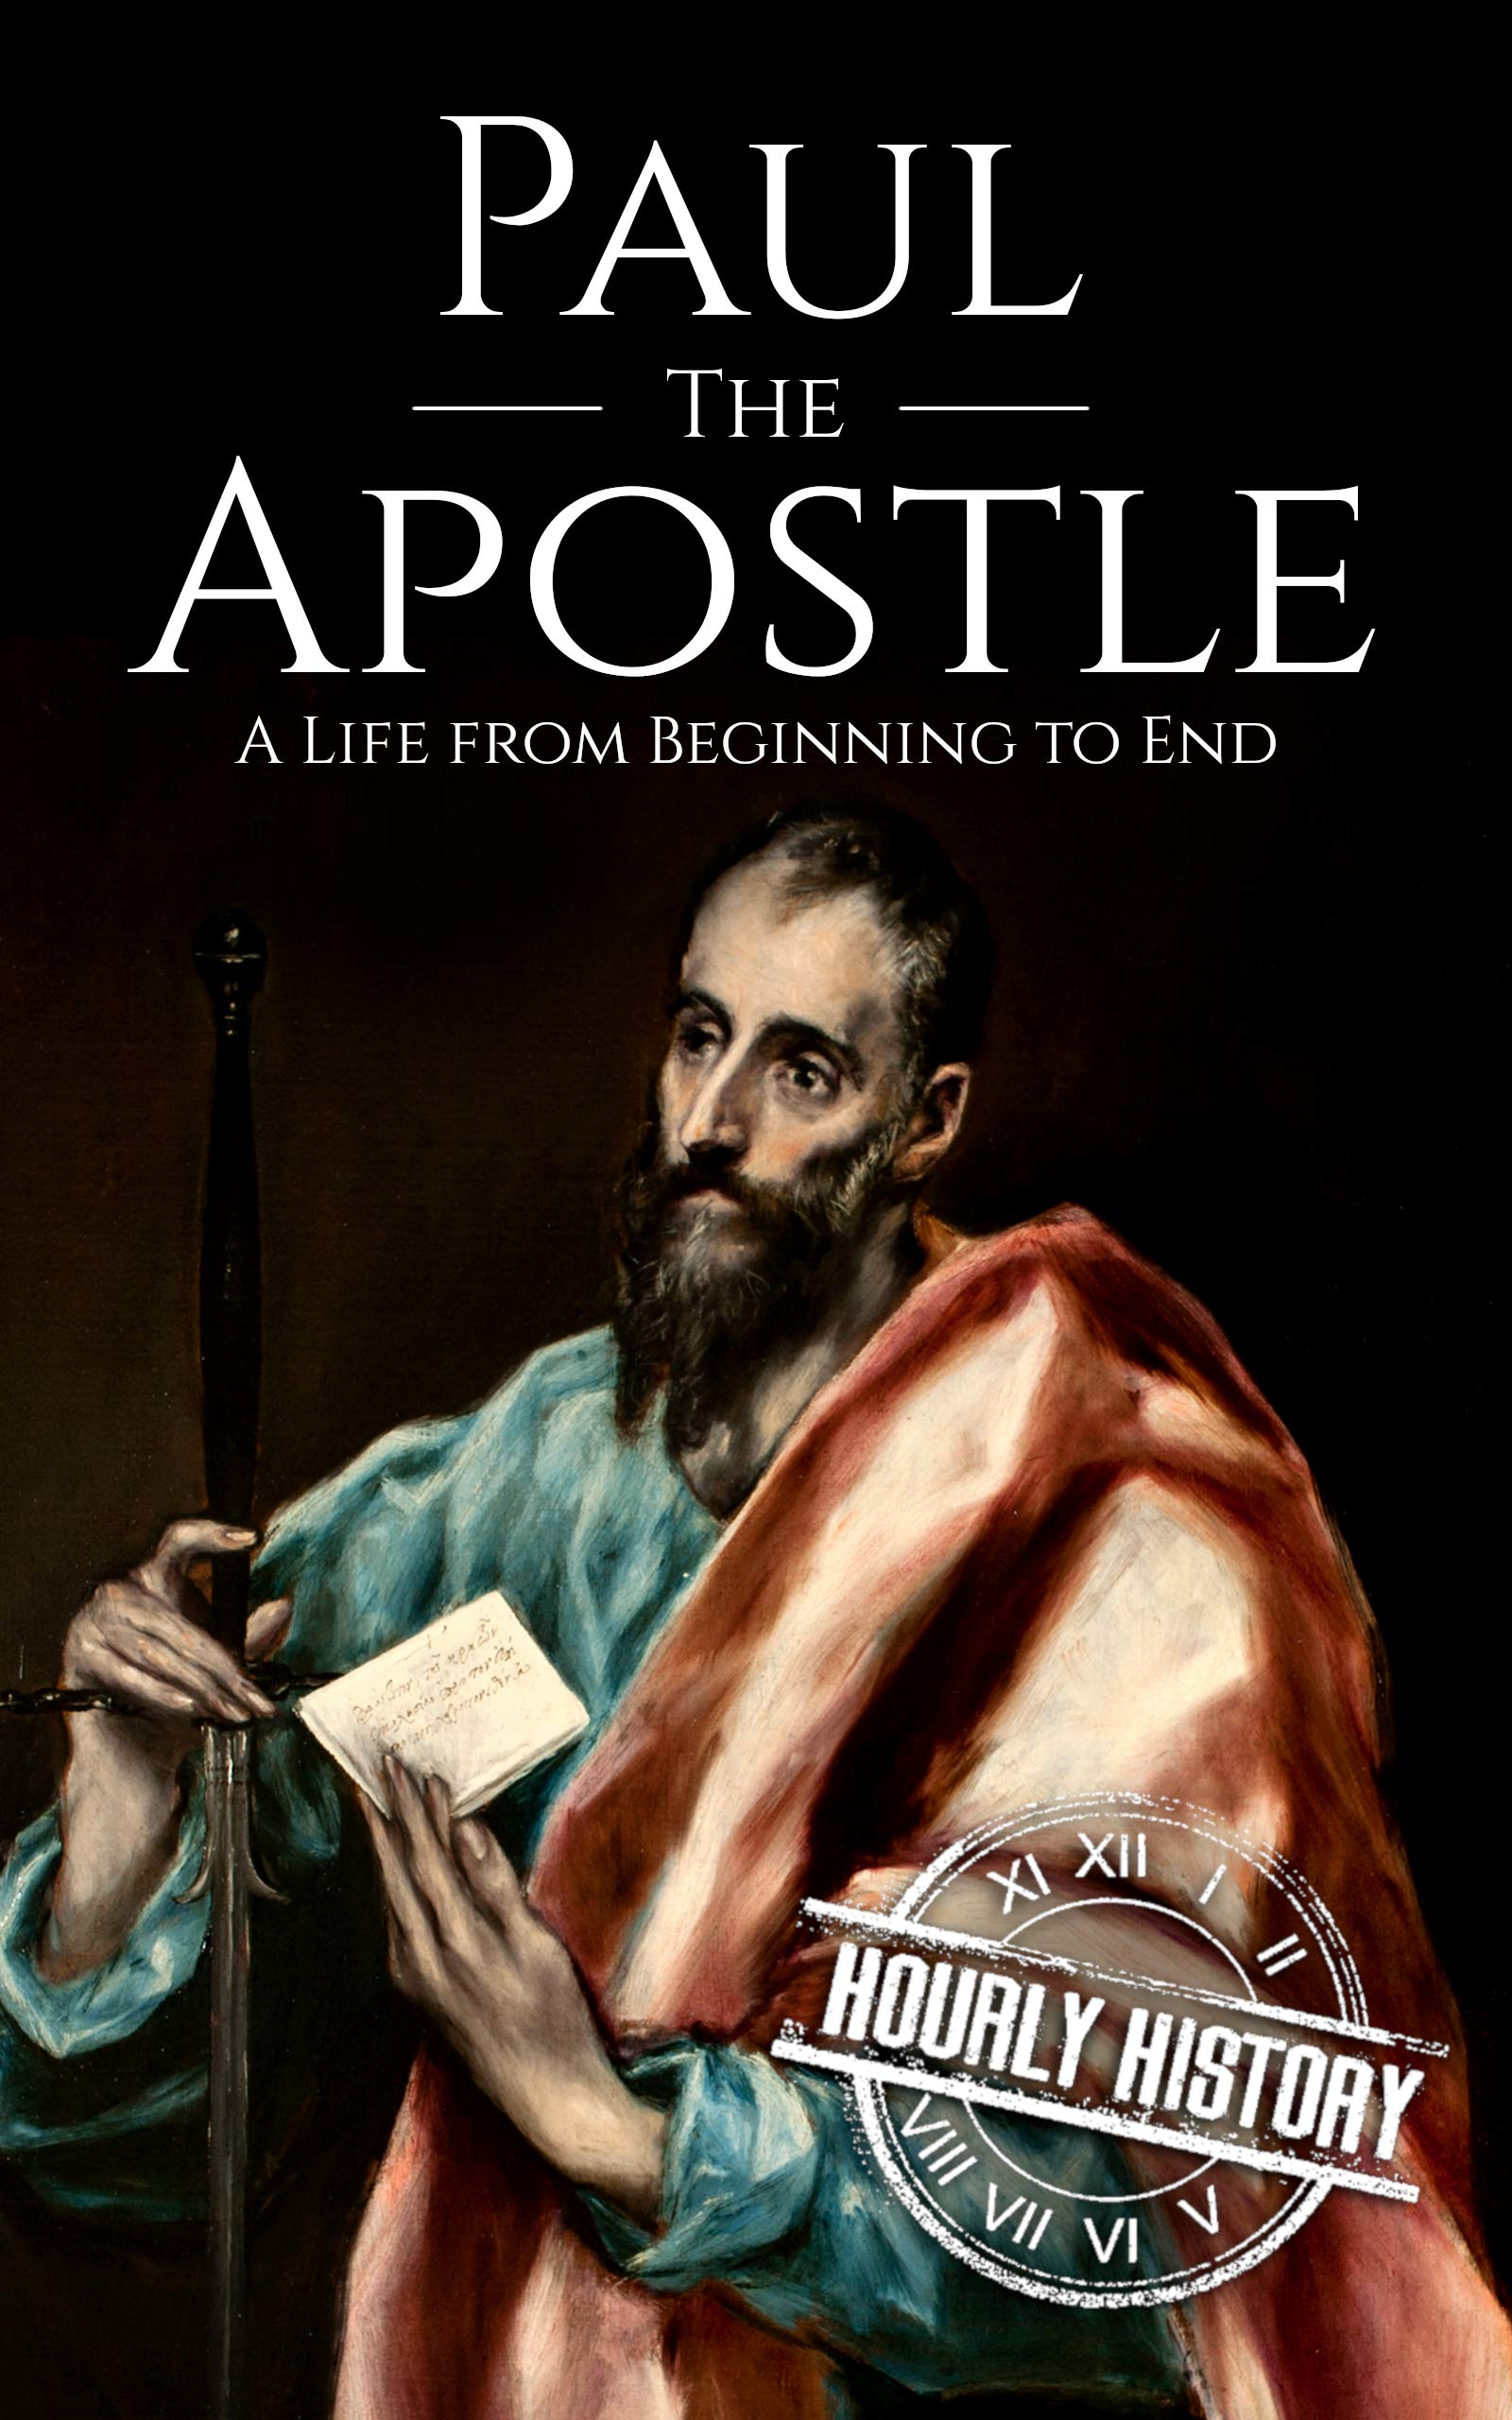 Paul the Apostle: A Life from Beginning to End (Biographies of Christians Book 9)